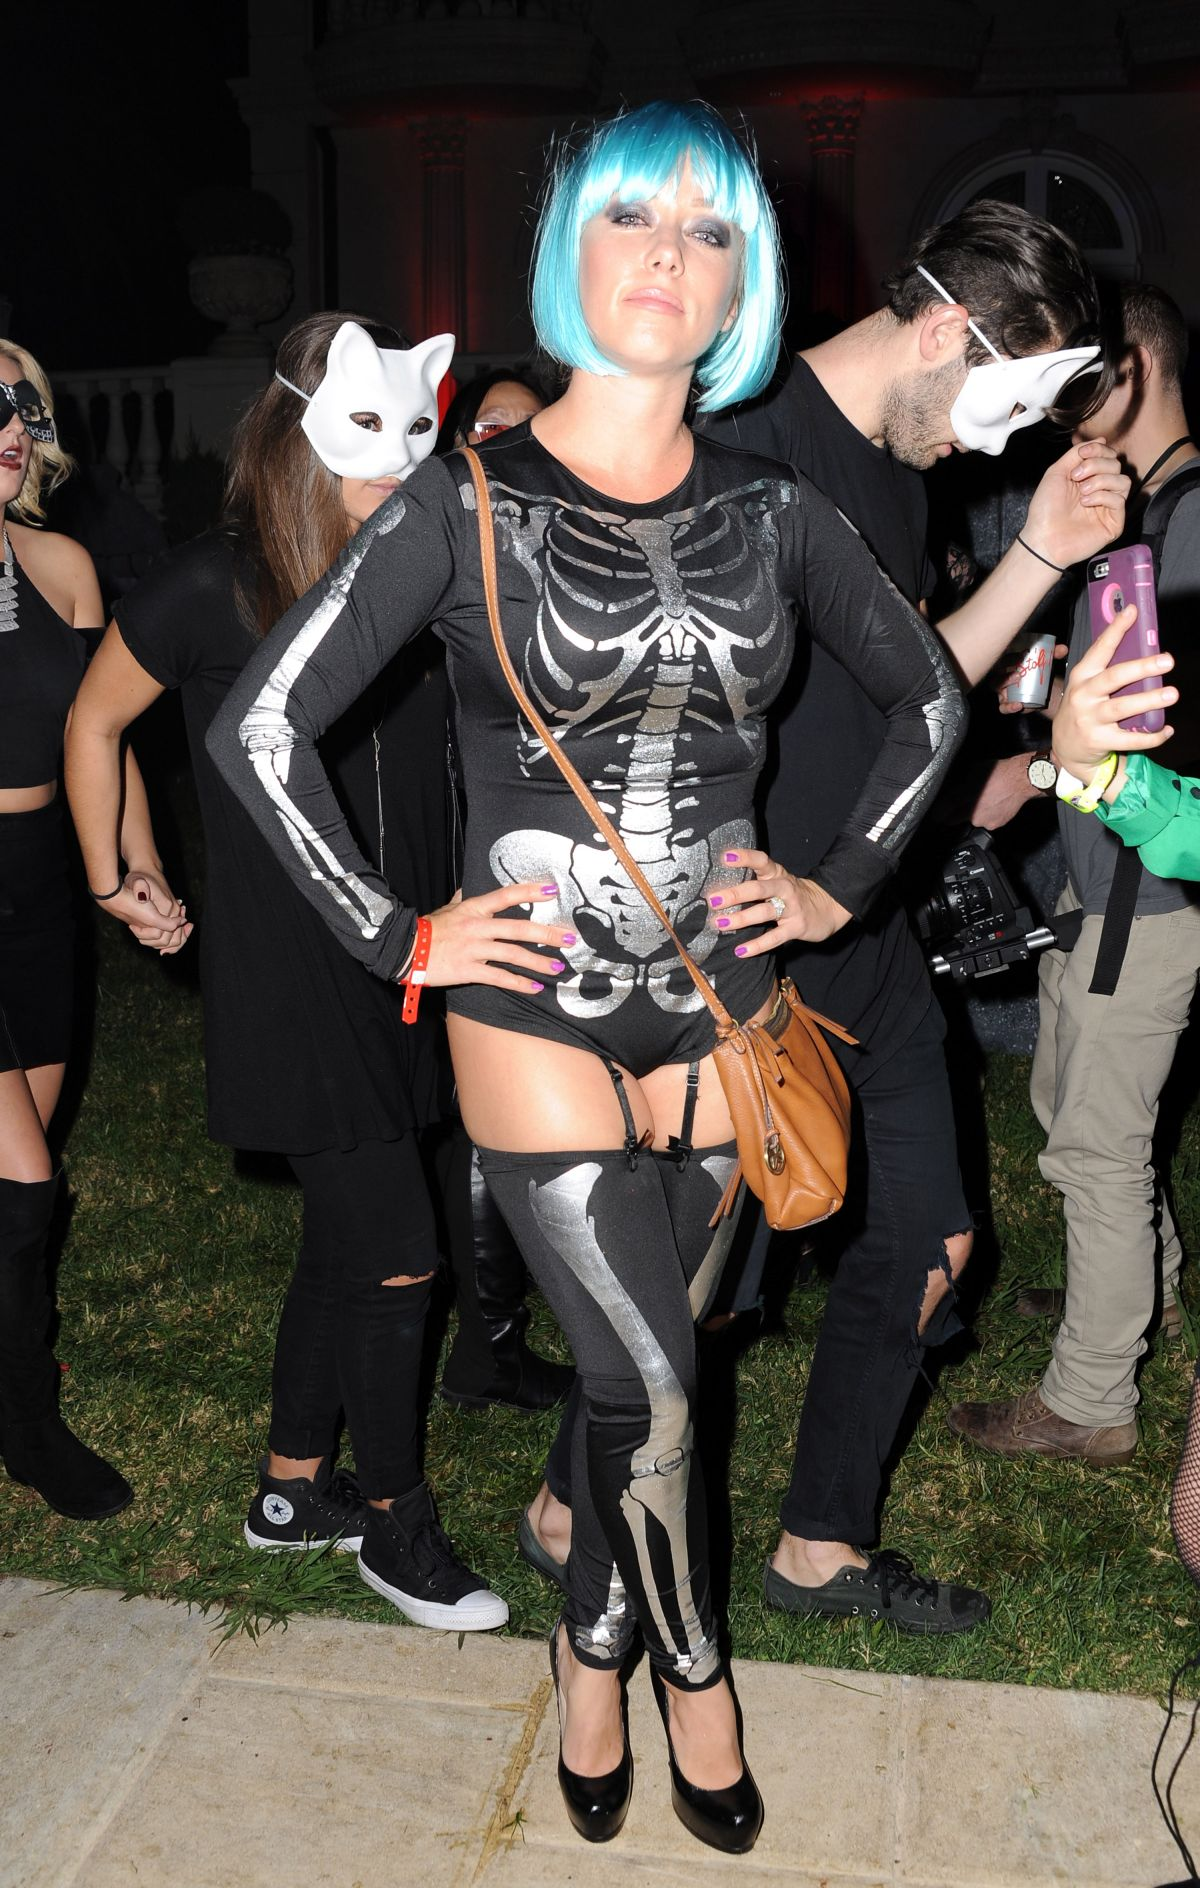 KENDRA WILKINSON at Maxim Magazine's Official Halloween Party in ...